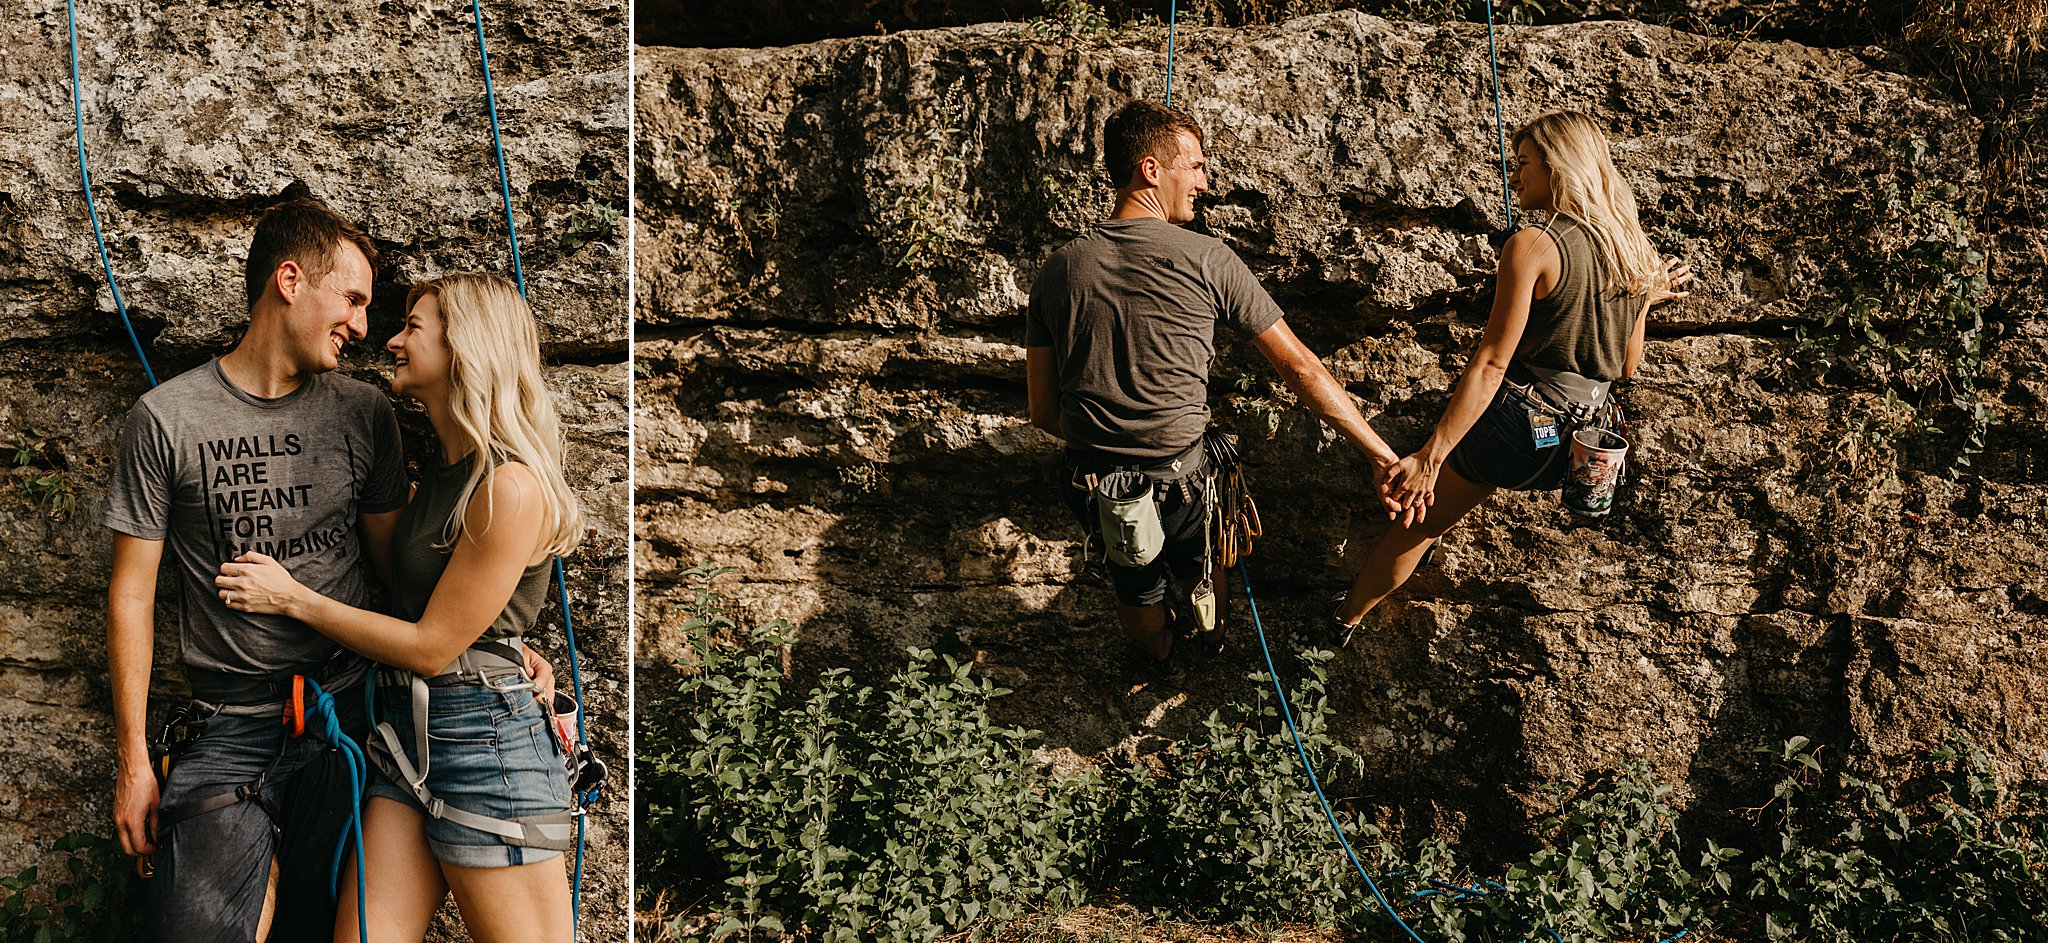 Wilderlove Co_Wedding Photographer_Dripping Springs Photography_Adventure Engagemenet_Rock Climbing Engagement_Hill Country Photographer_North Texas Photographer_0011.jpg